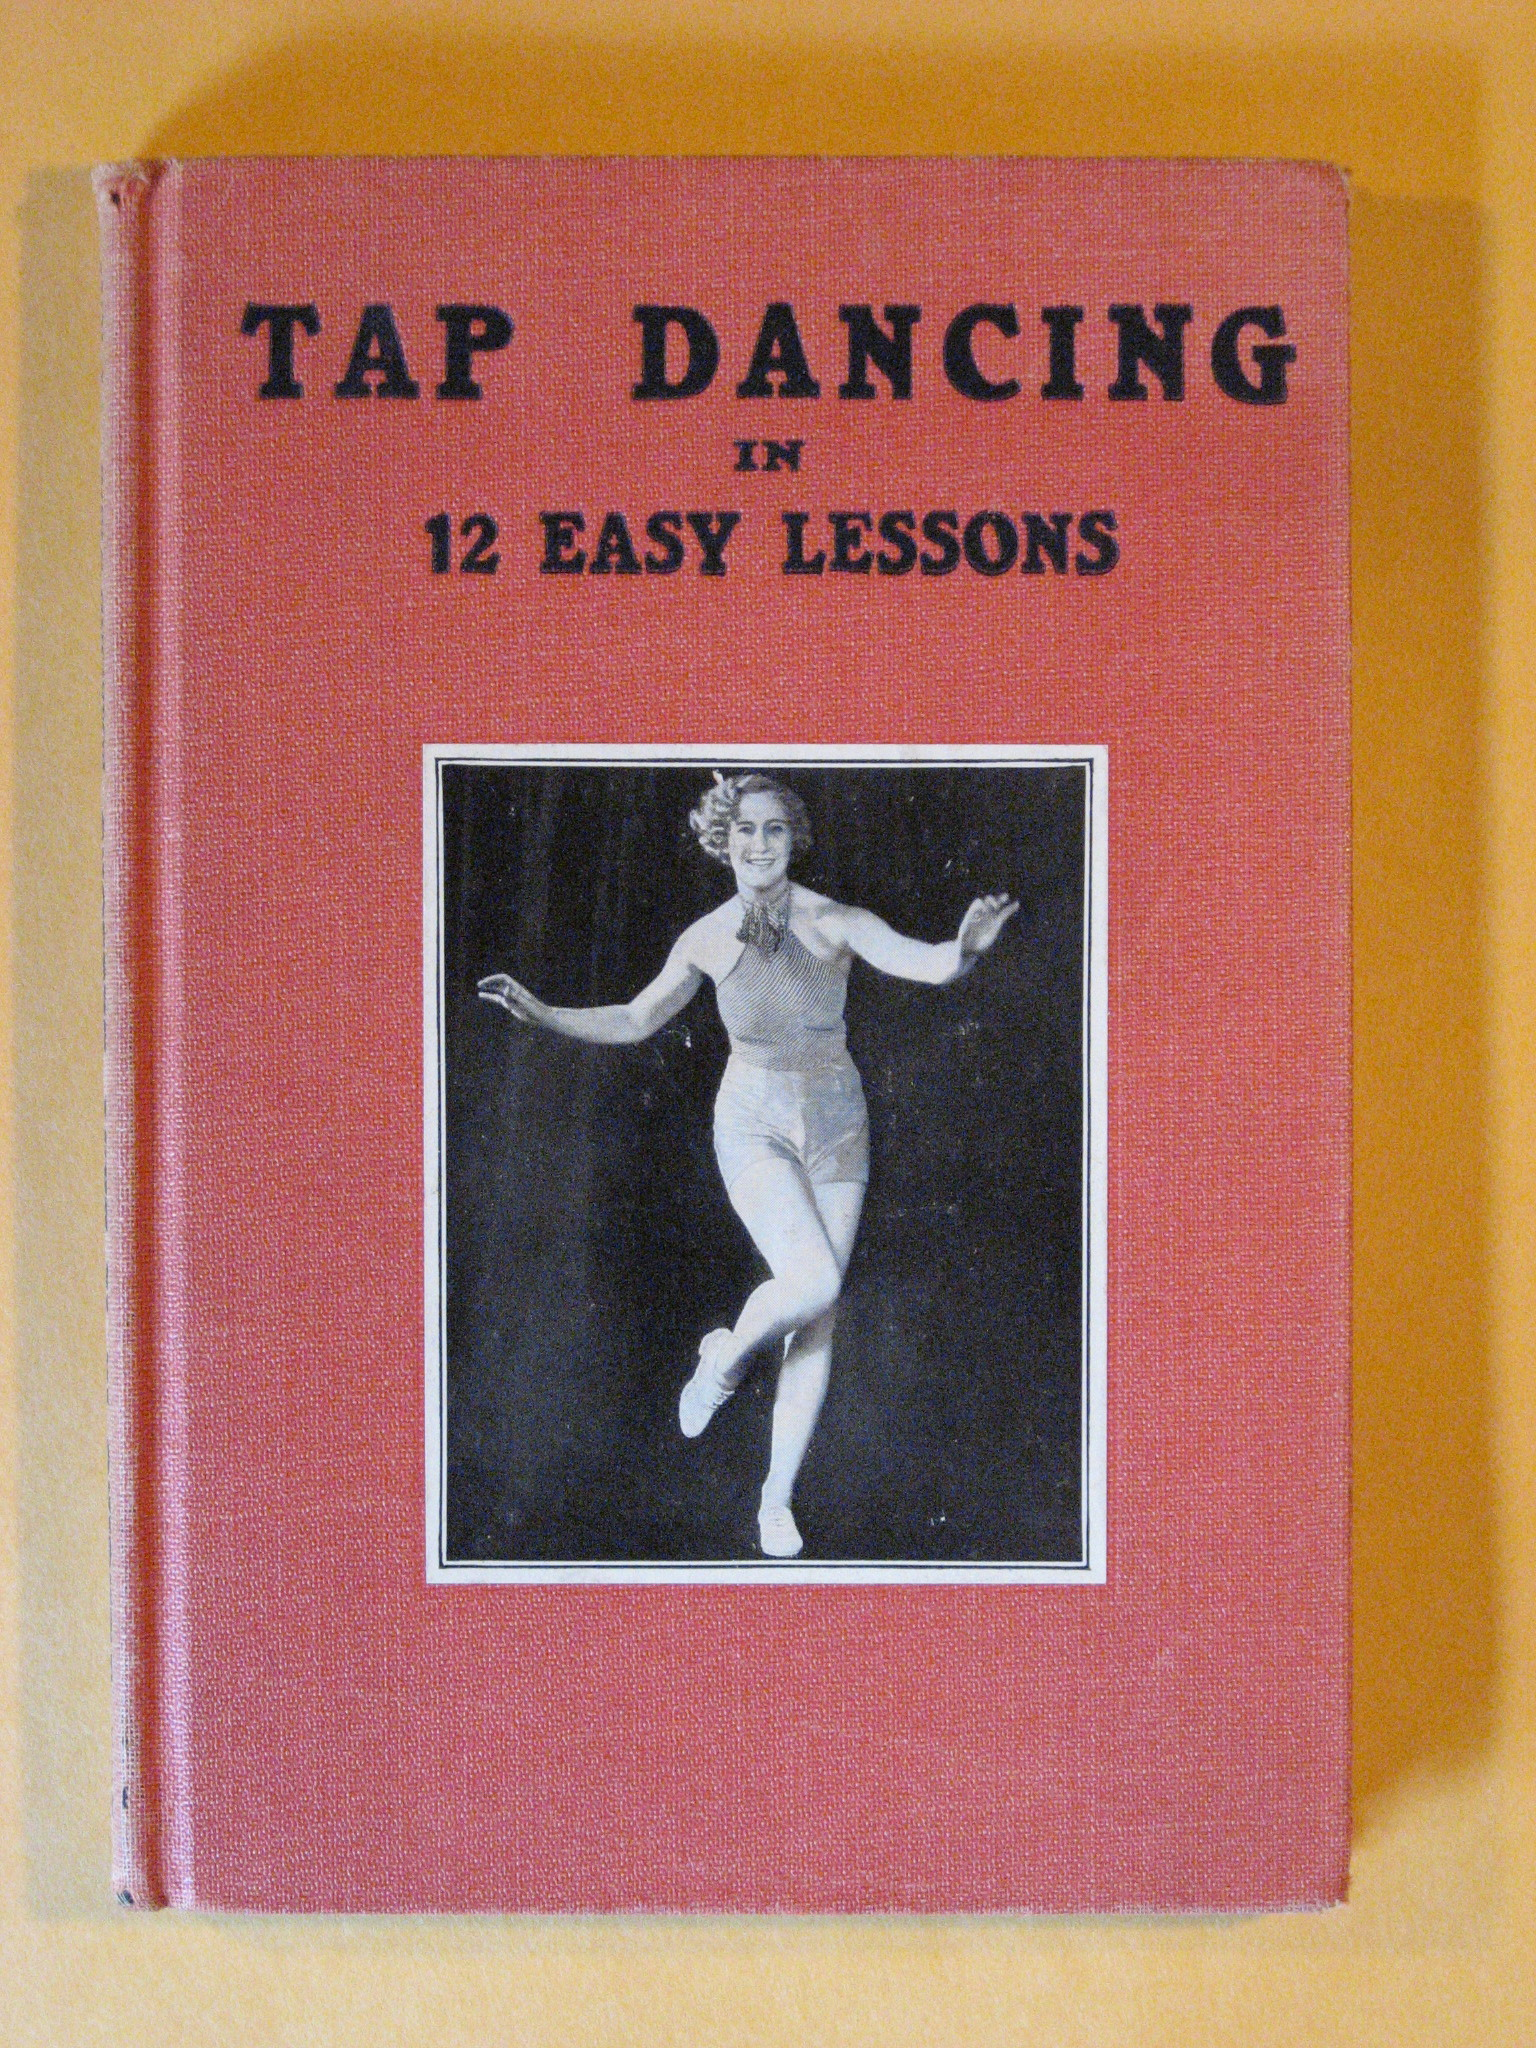 Tap Dancing in 12 Easy Lessons